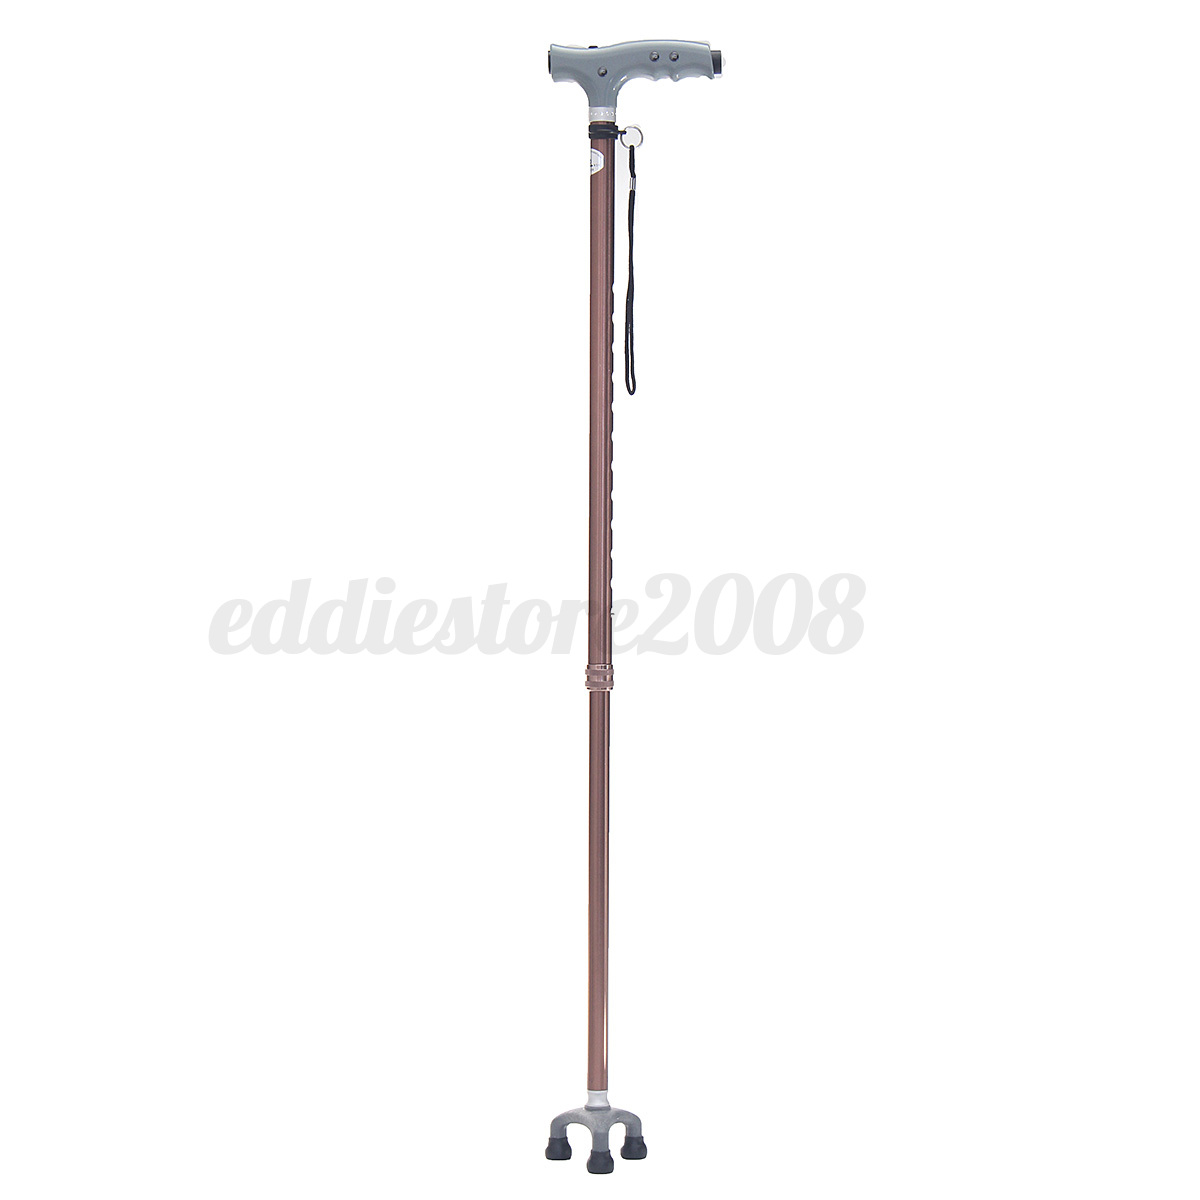 Adjustable tripod cane ctrutch led anti shock portable - Antishock porta ...